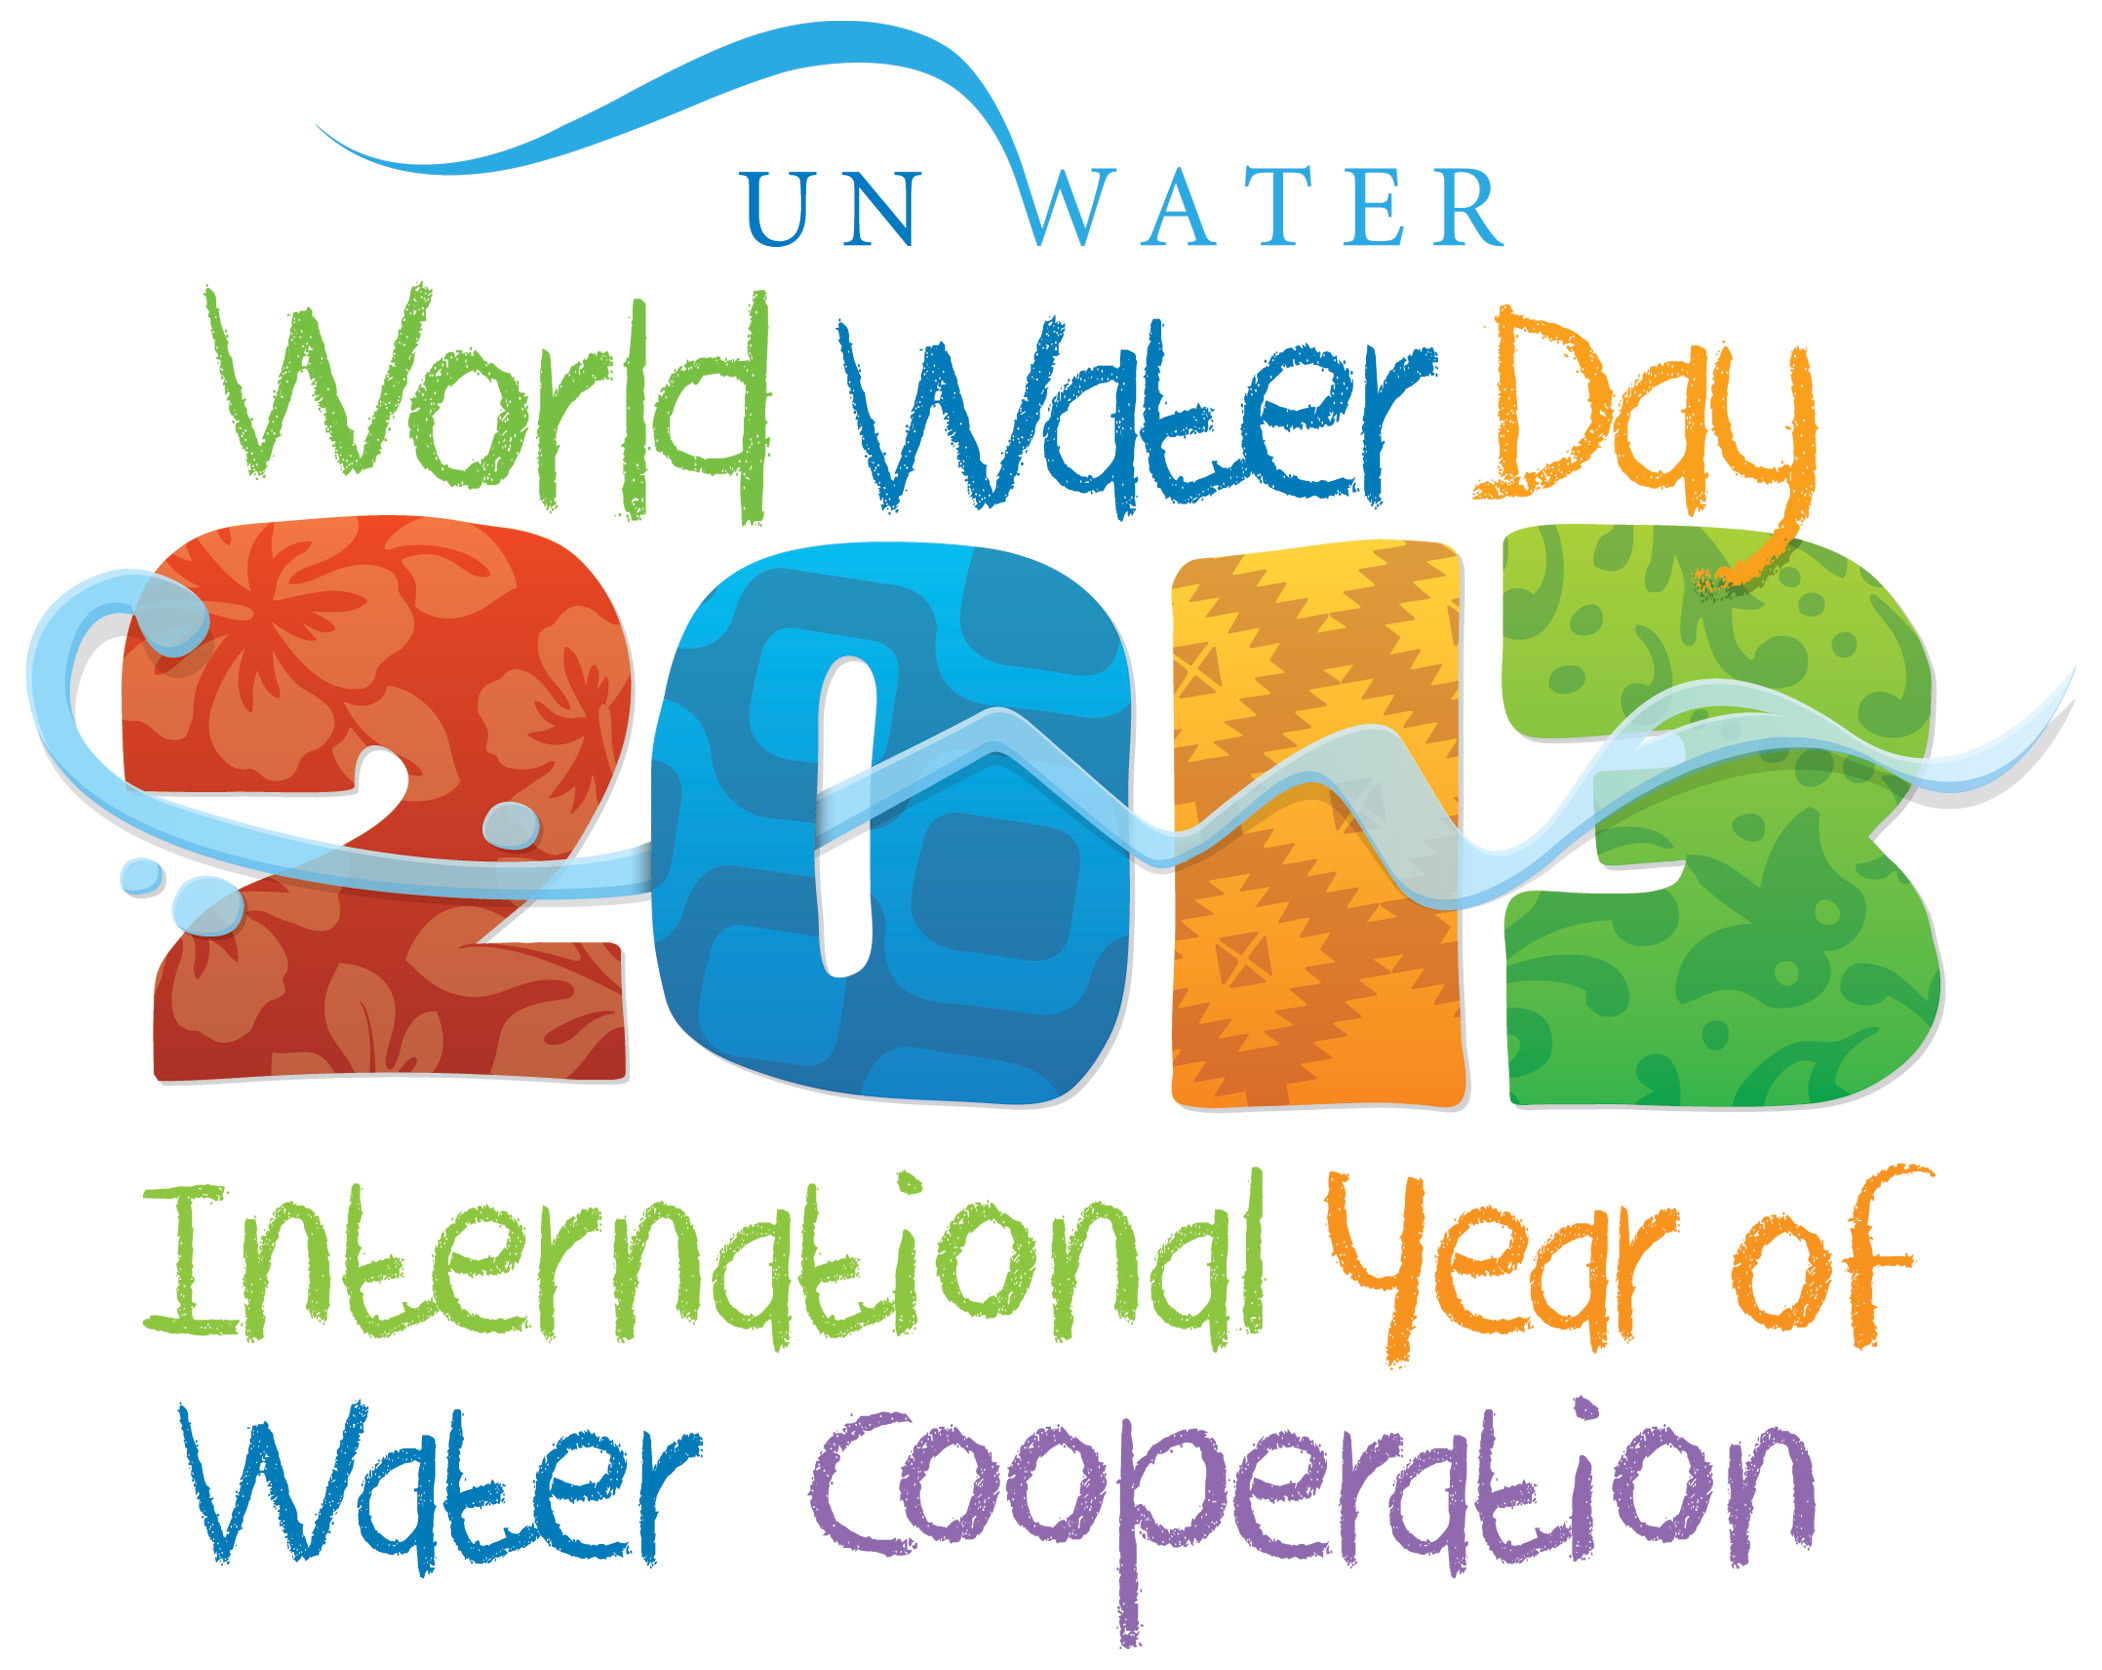 (c) Official UNO logo for the World Water Day 2013